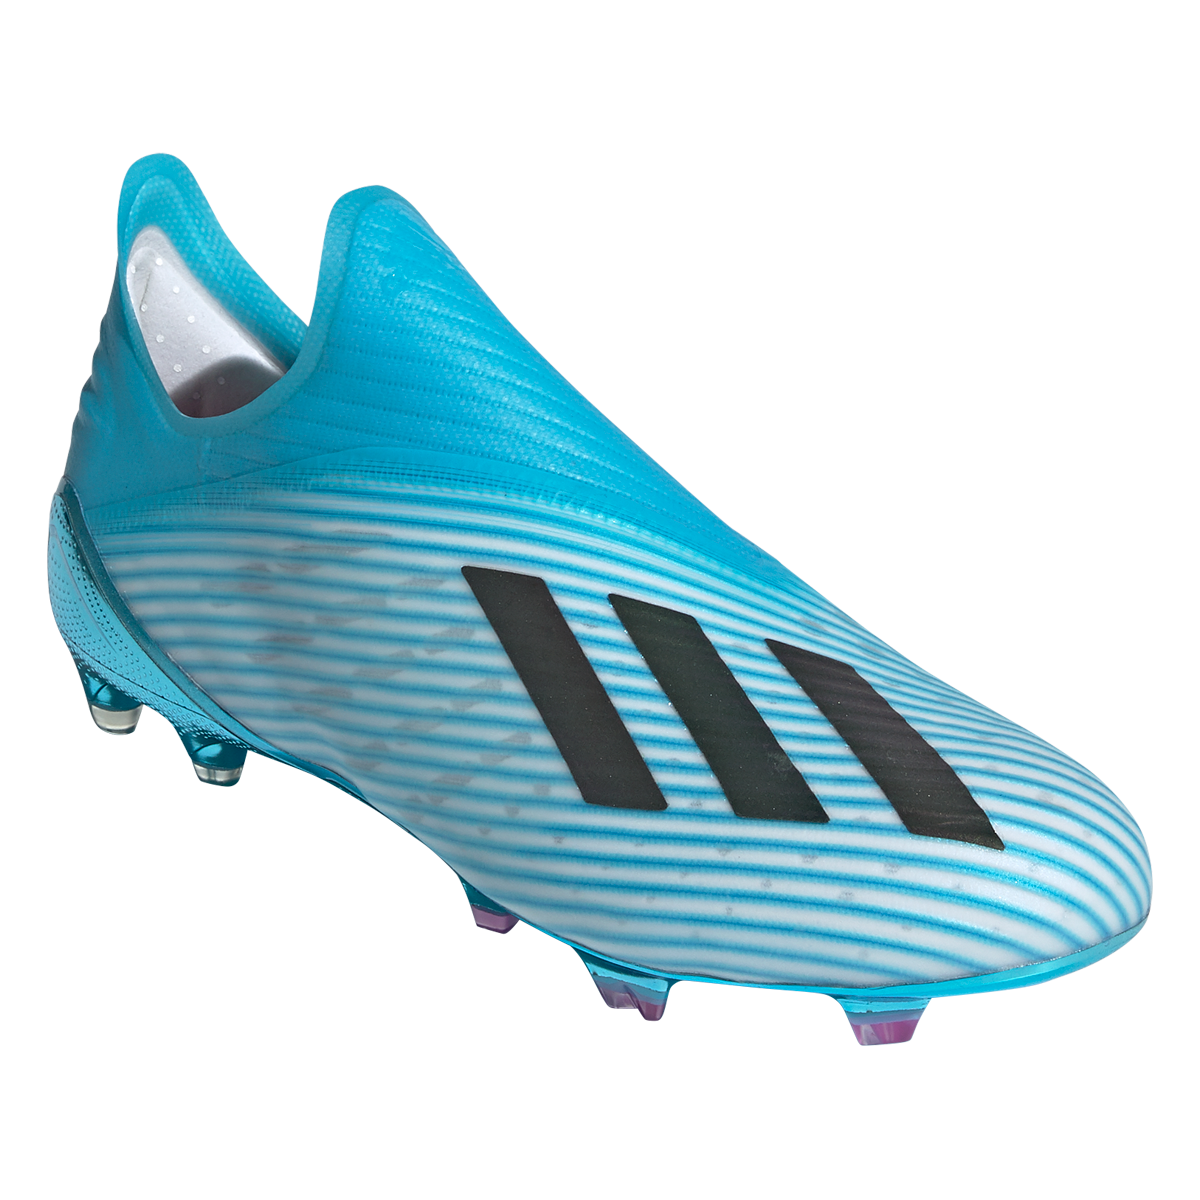 Adidas X 19 Fg Soccer Cleats Cyan Black Pink 10 Cleats Soccer Cleats Best Soccer Cleats